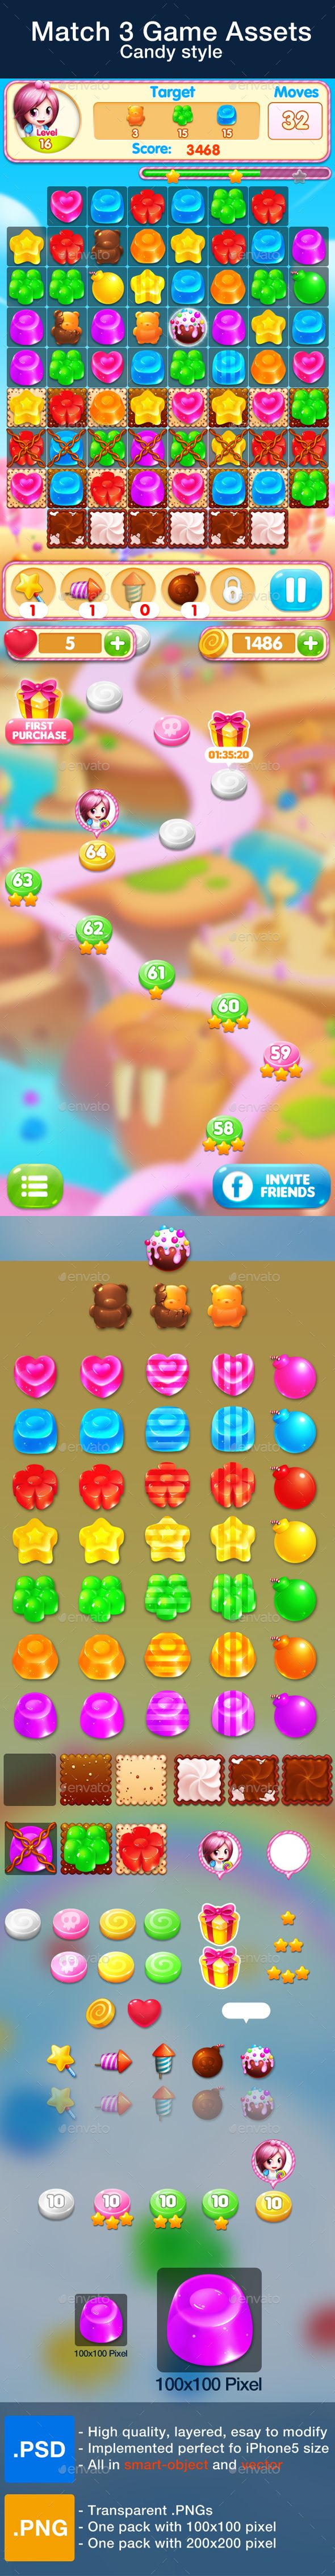 Match 3 Game Assets - Candy Style.  	2d, candies, candy, cute, design, game, game assets, game kits, gui, items, lock, match 3, mobile, mobile game, object, sweet